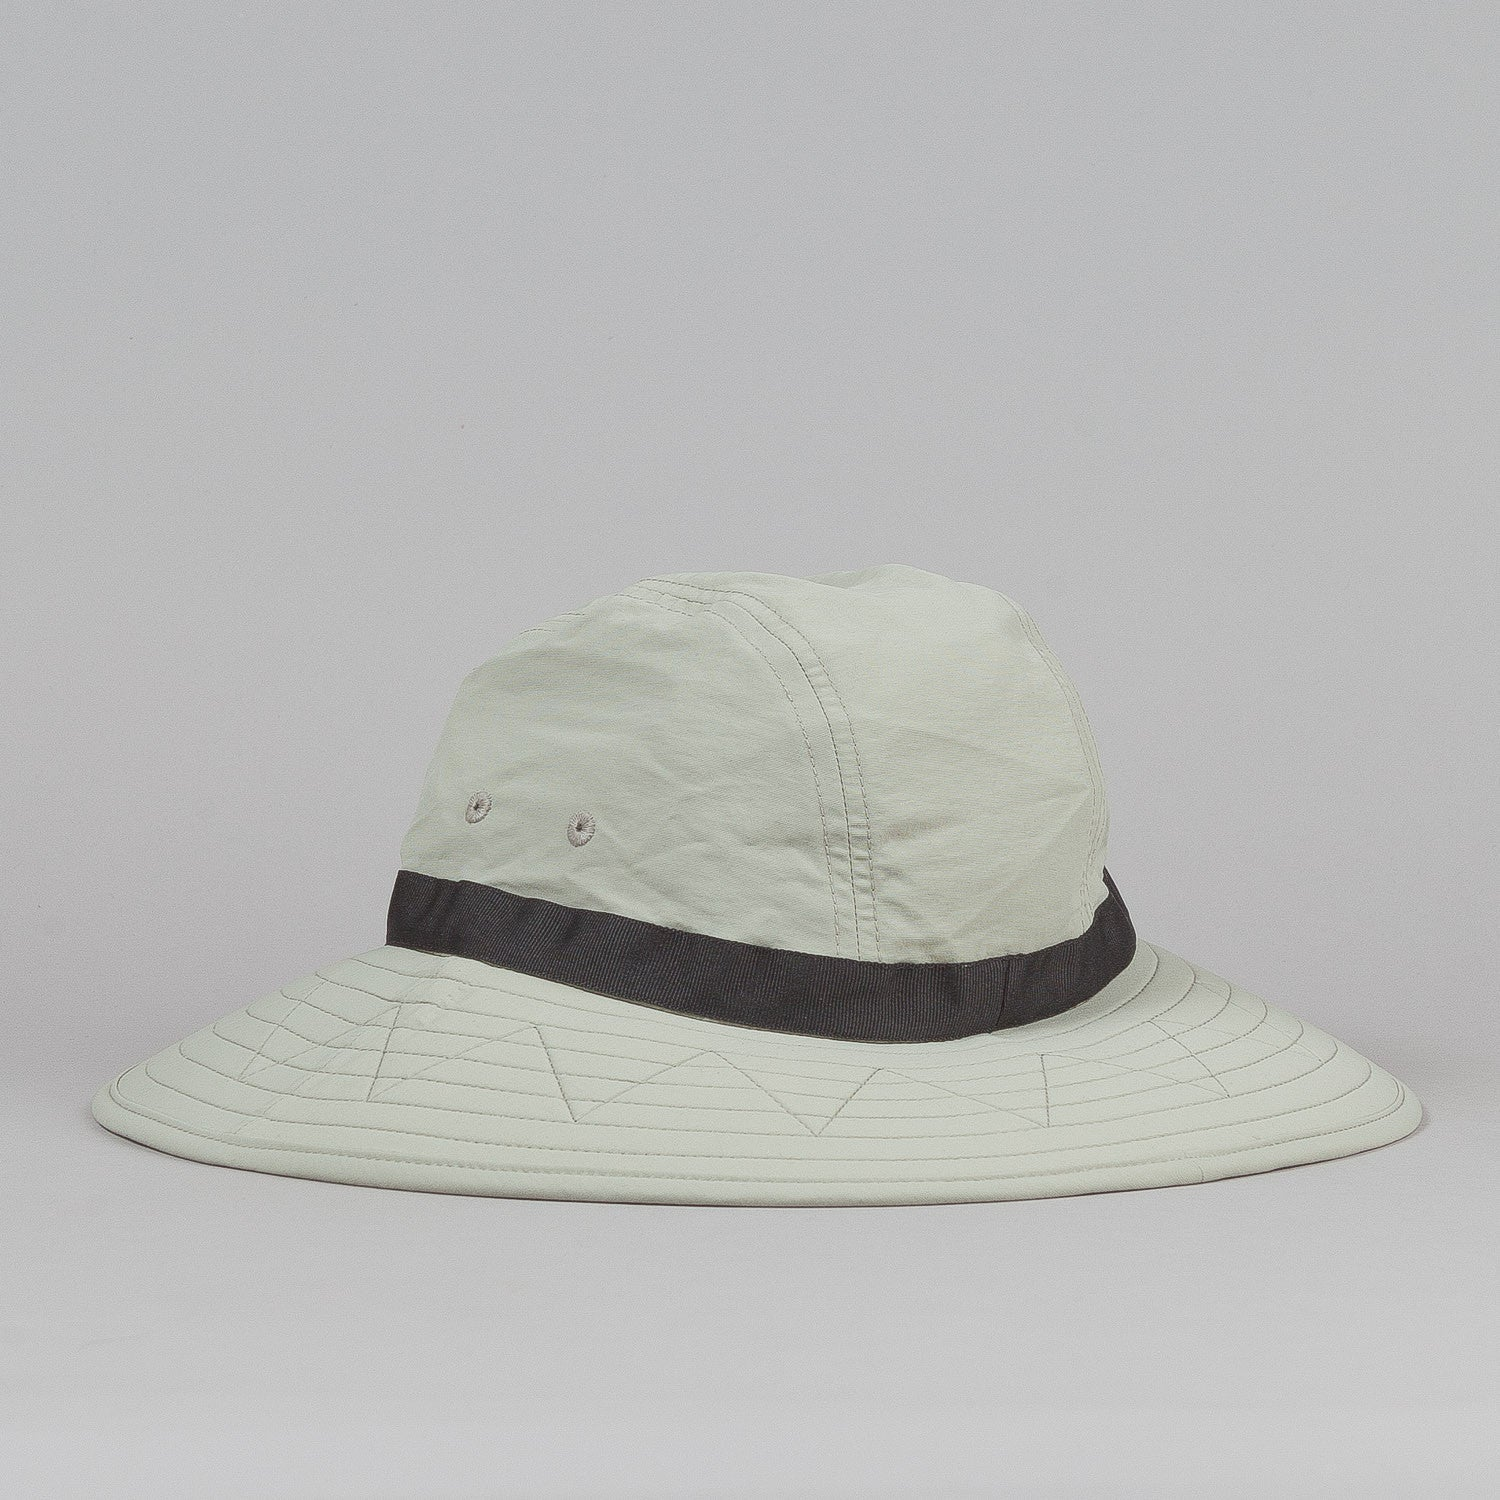 Patagonia Sun Booney Hat - Stone